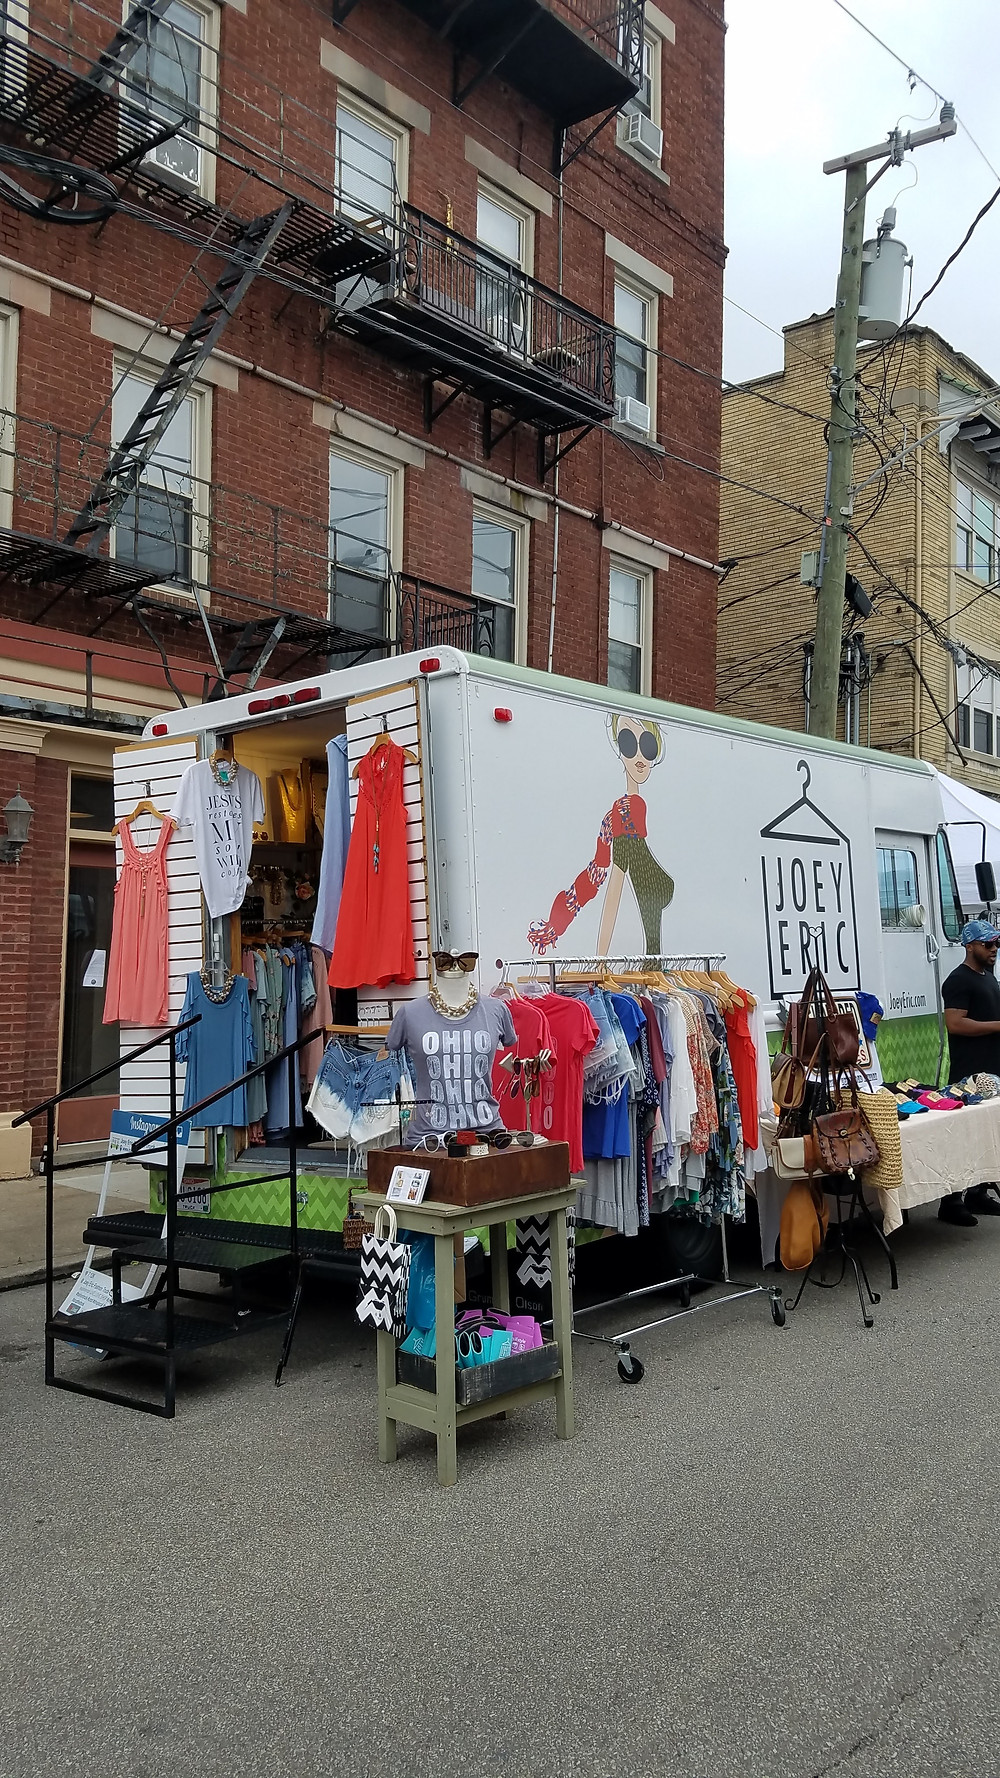 The OFF Market Joey Eric Fashion Truck